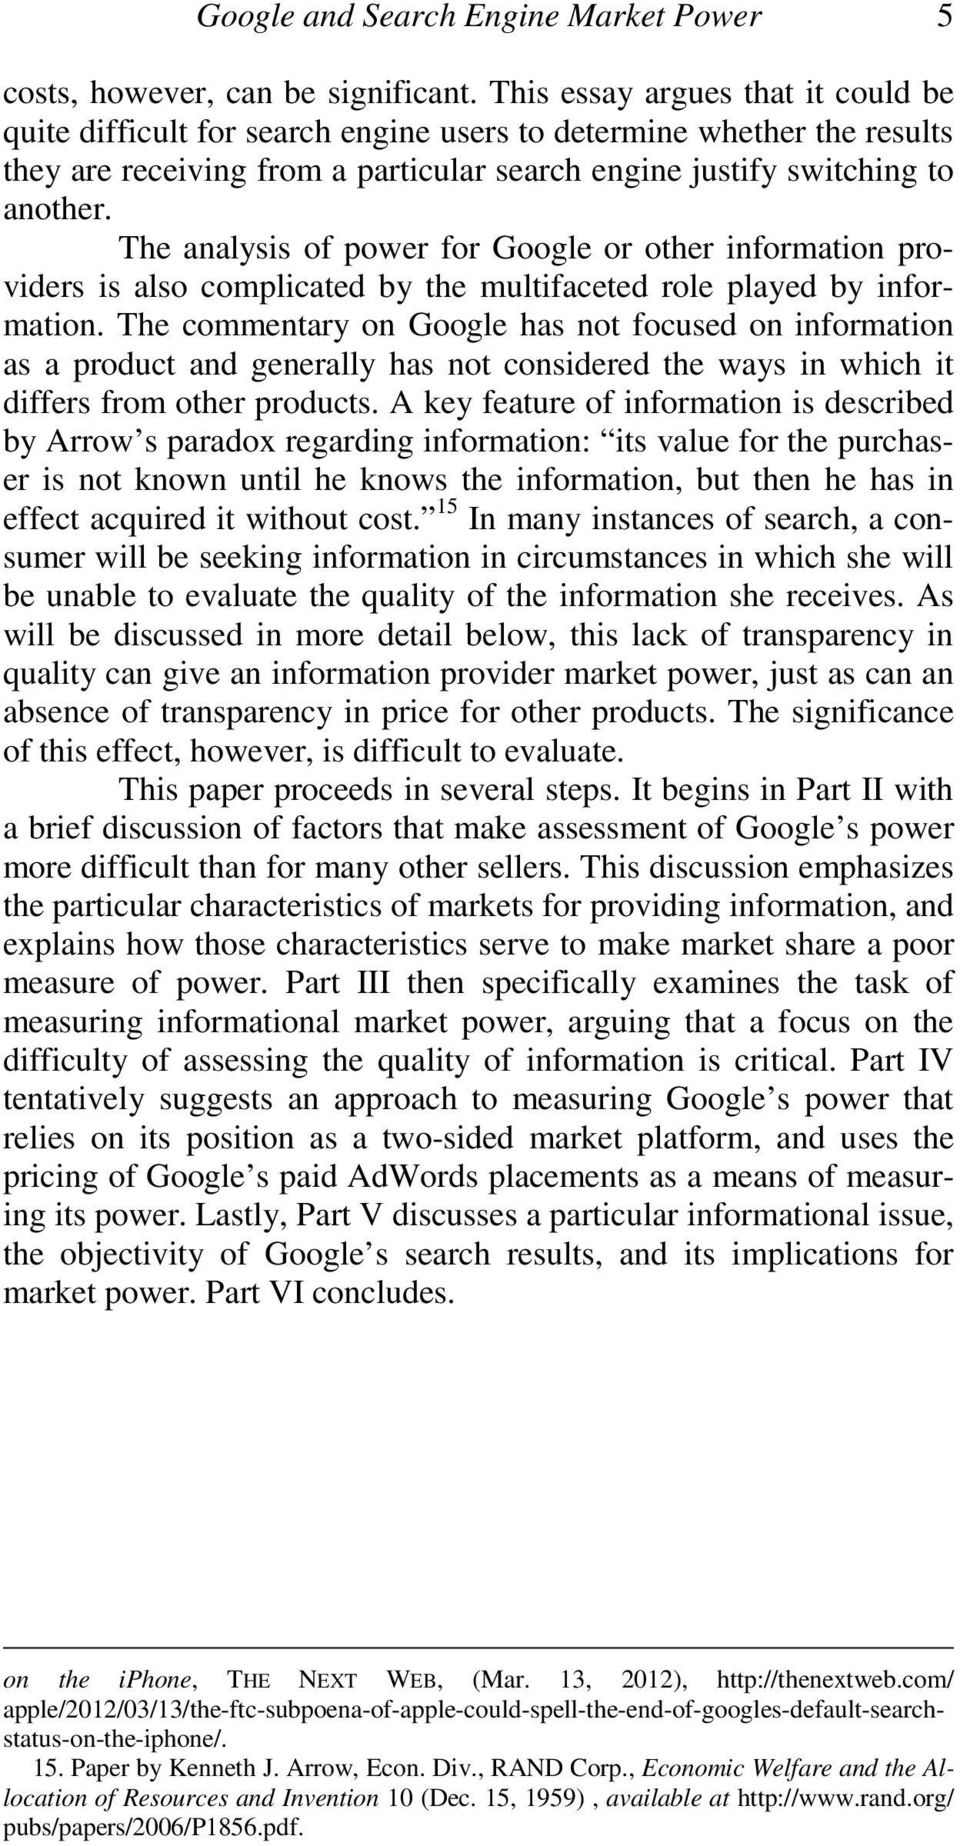 The analysis of power for Google or other information providers is also complicated by the multifaceted role played by information.